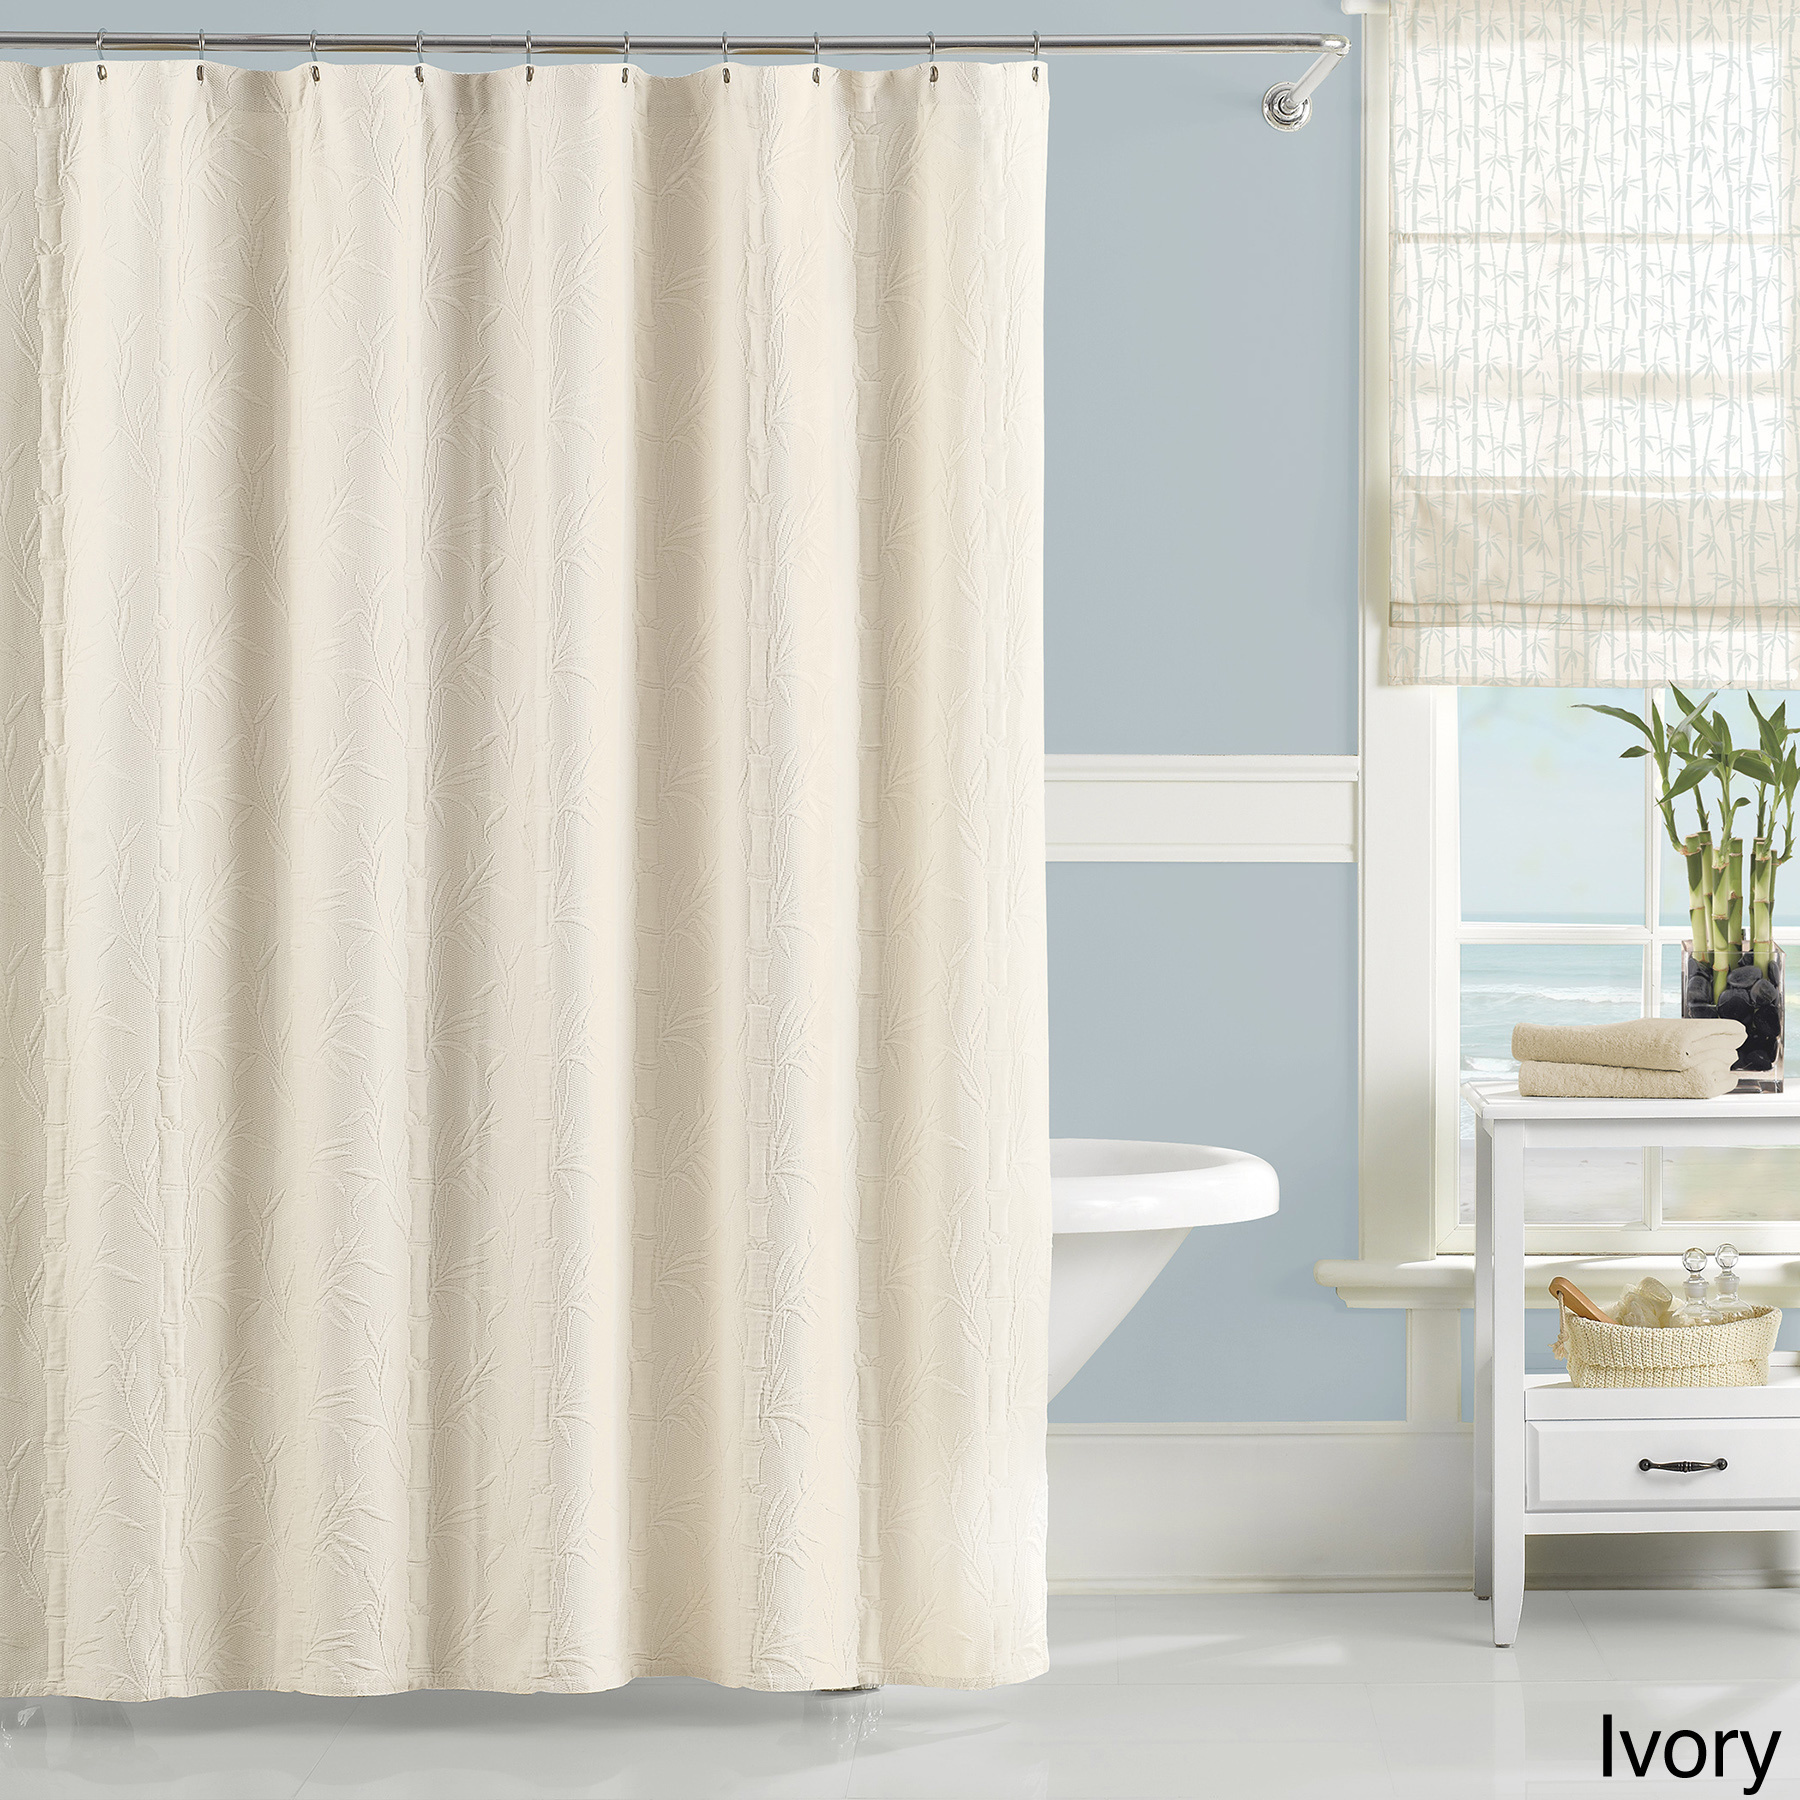 Bathroom Luxury Shower Curtain With Minimalist Luxury Cotton